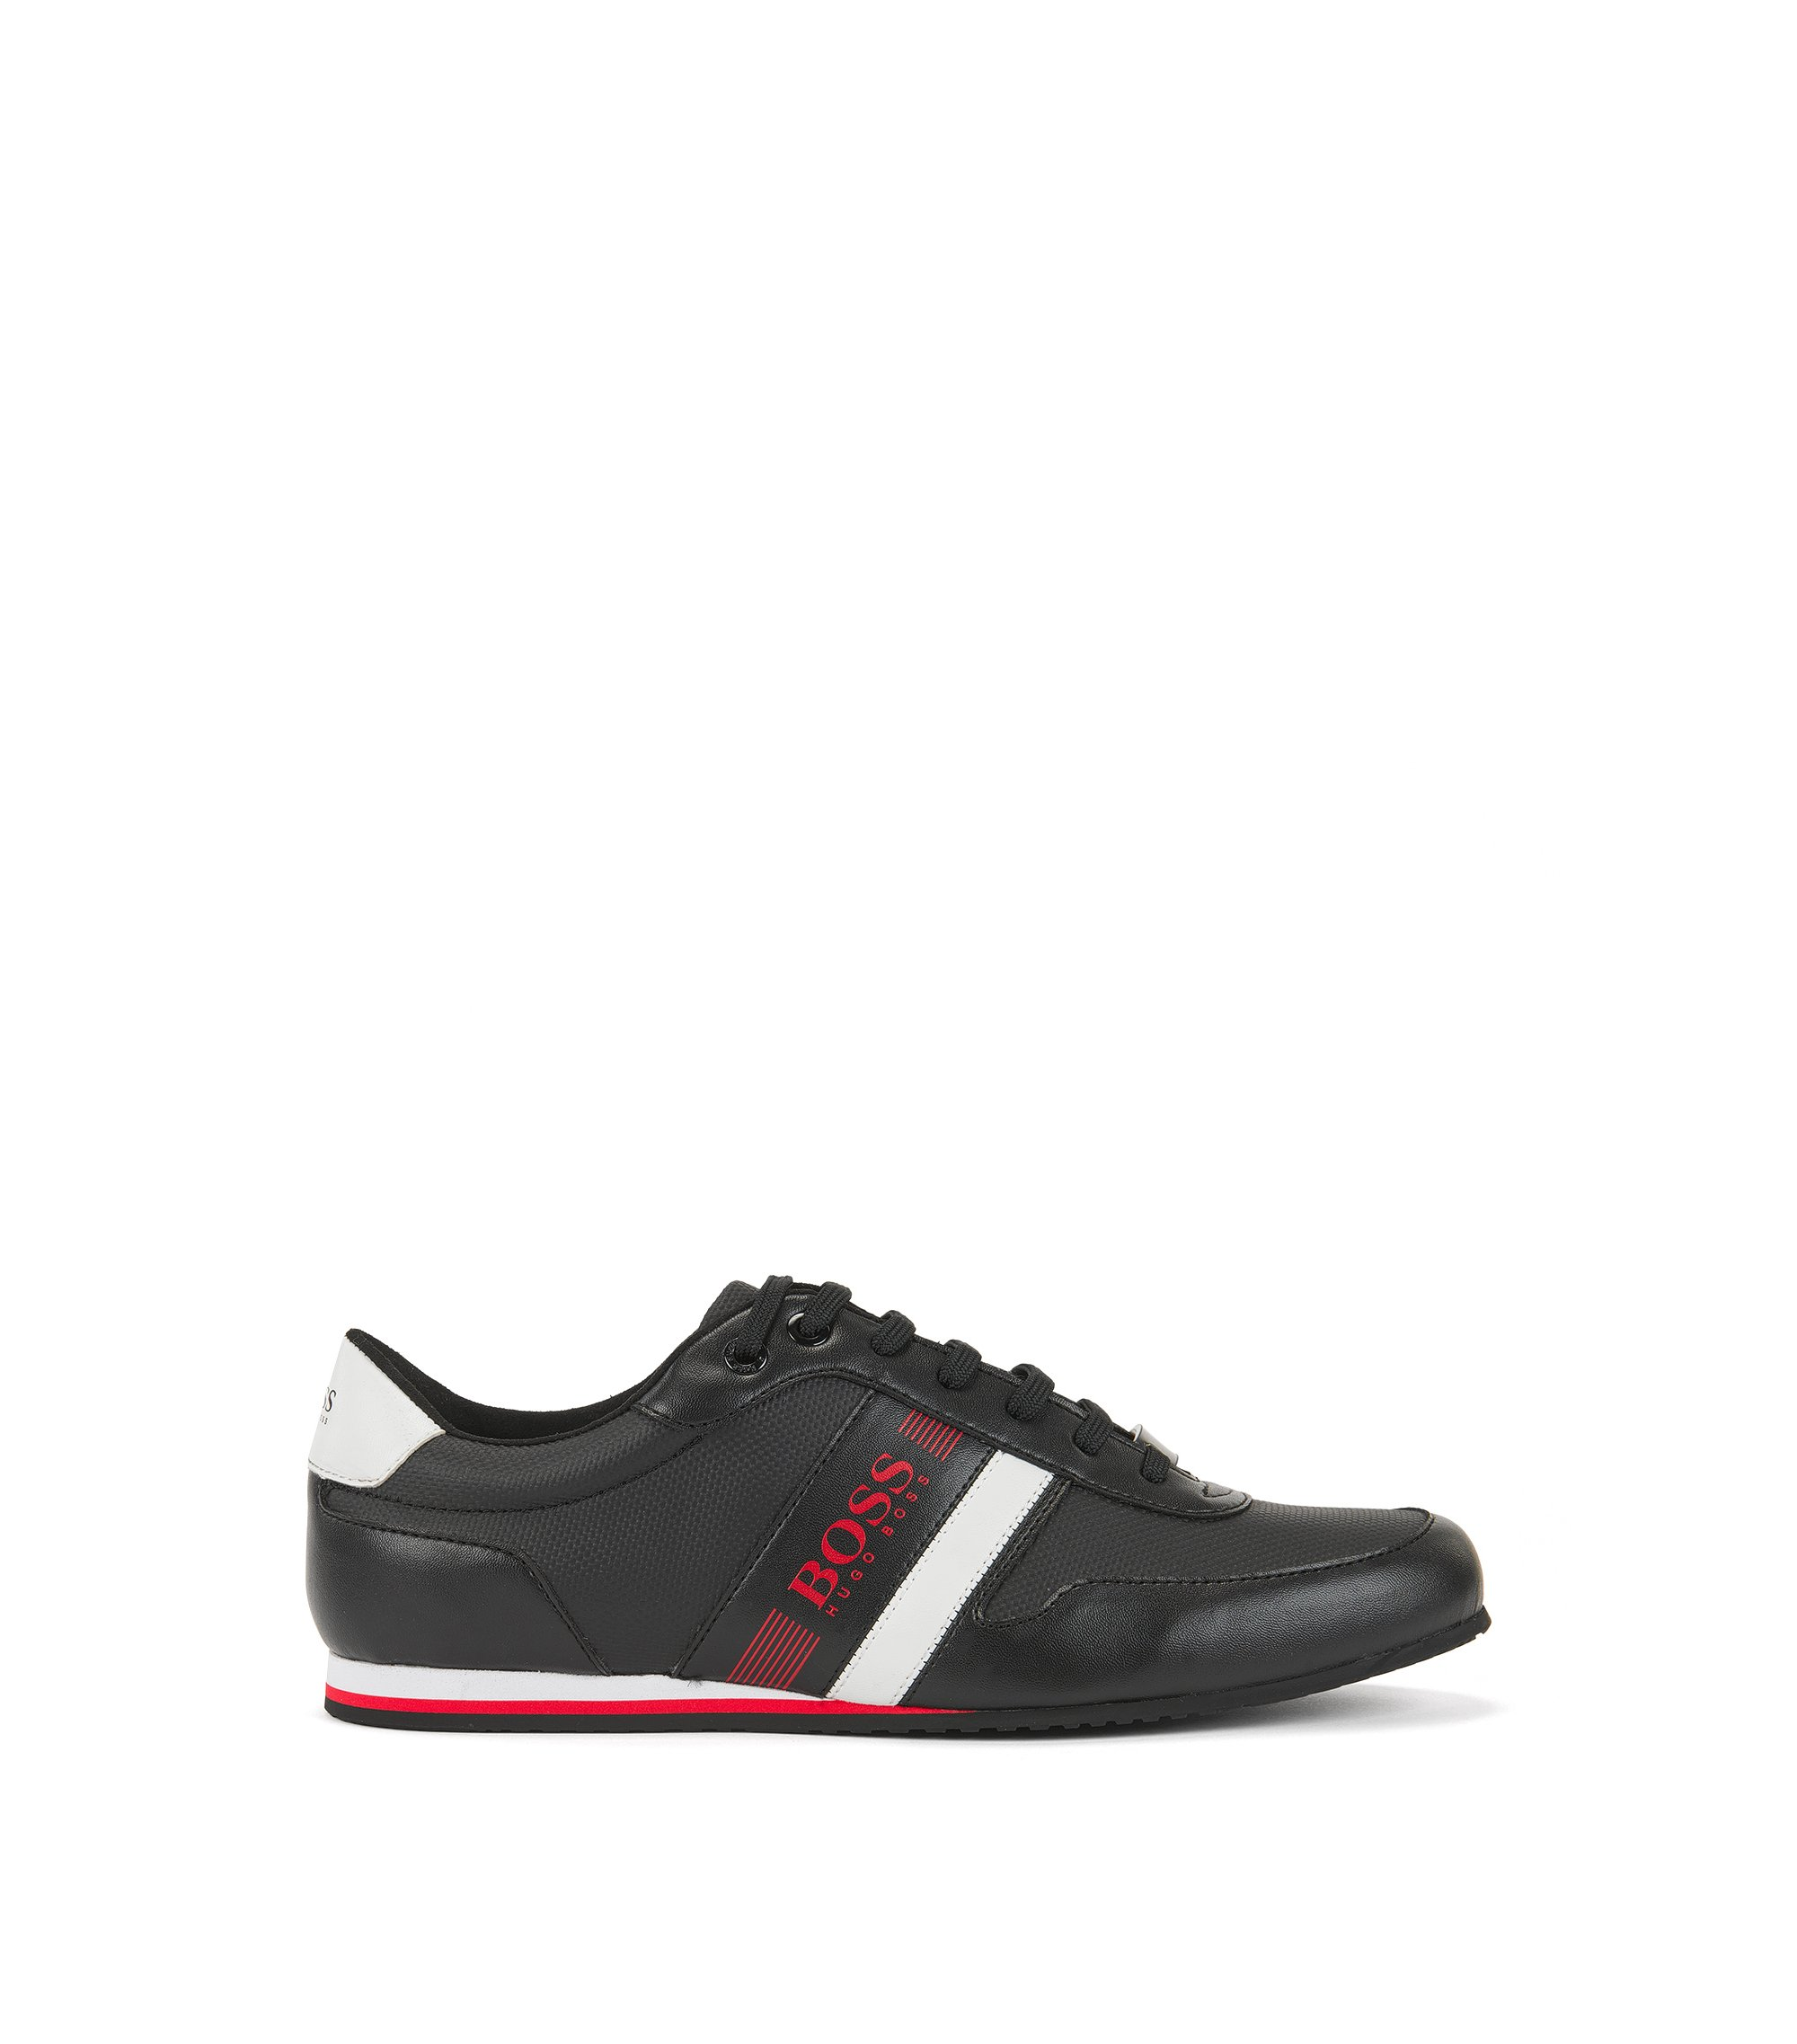 Sneakers low-top ultraleggere in tela rivestita, Nero